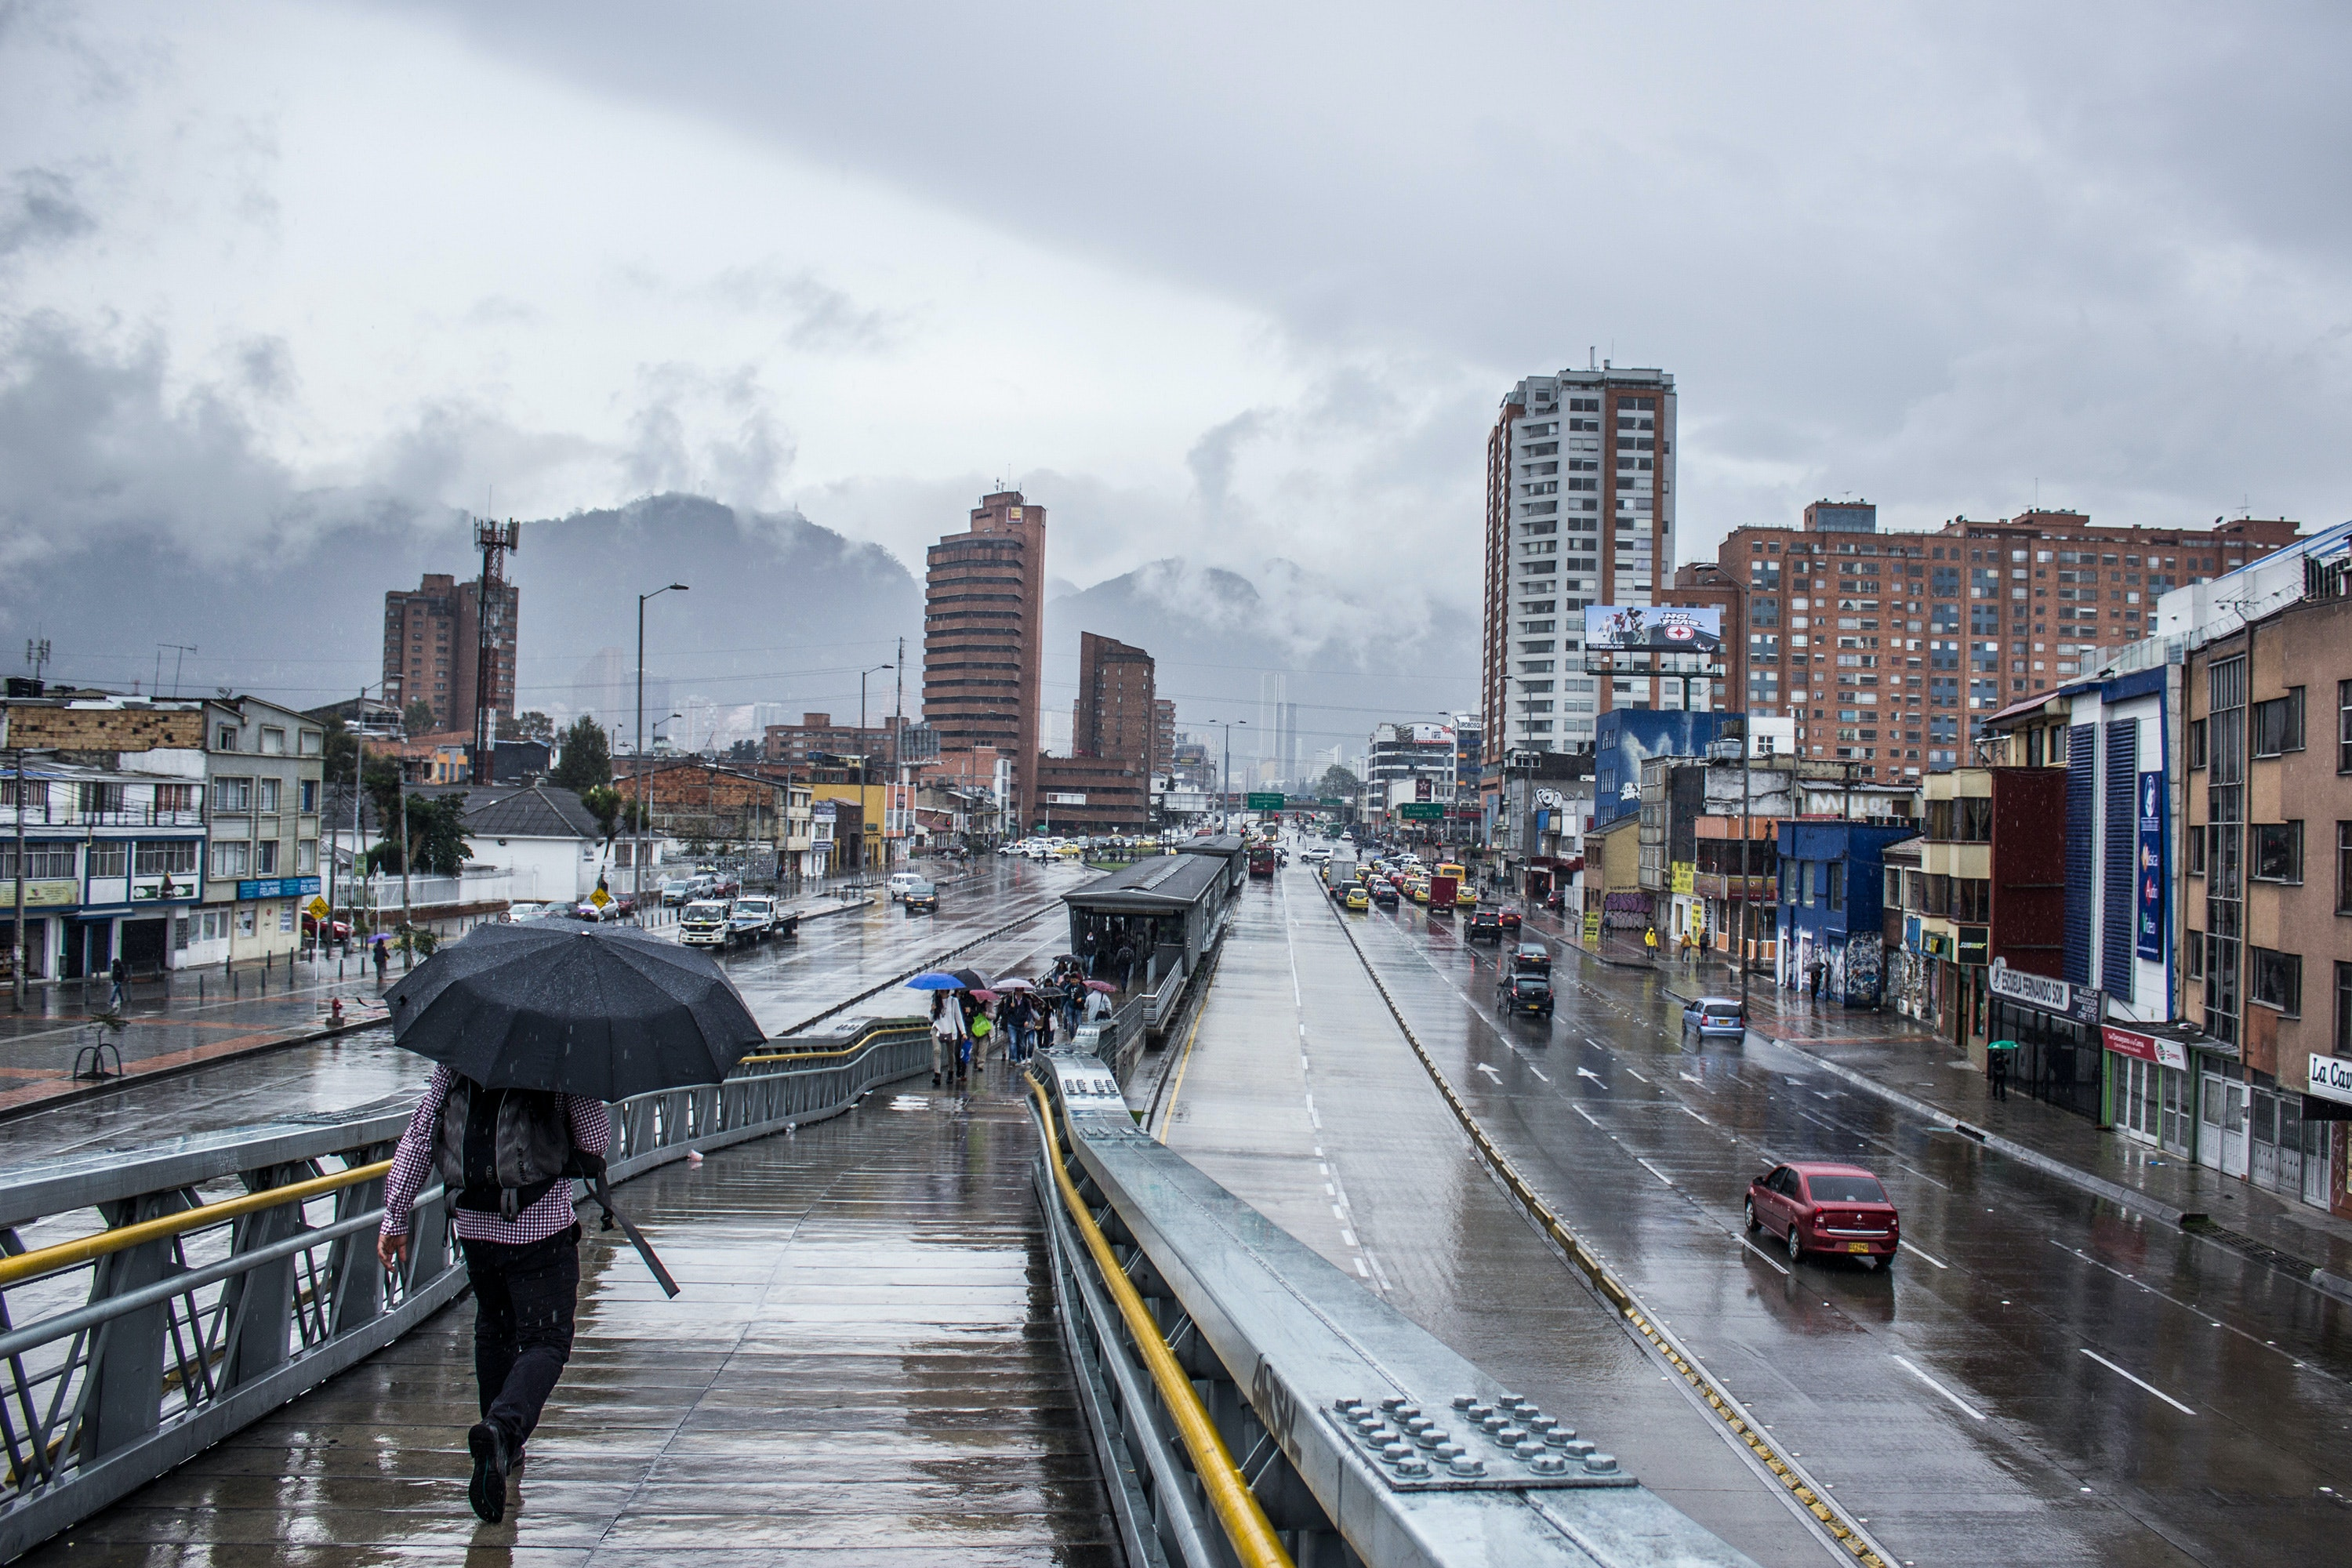 A person walking with an umbrella in Bogota, Colombia.